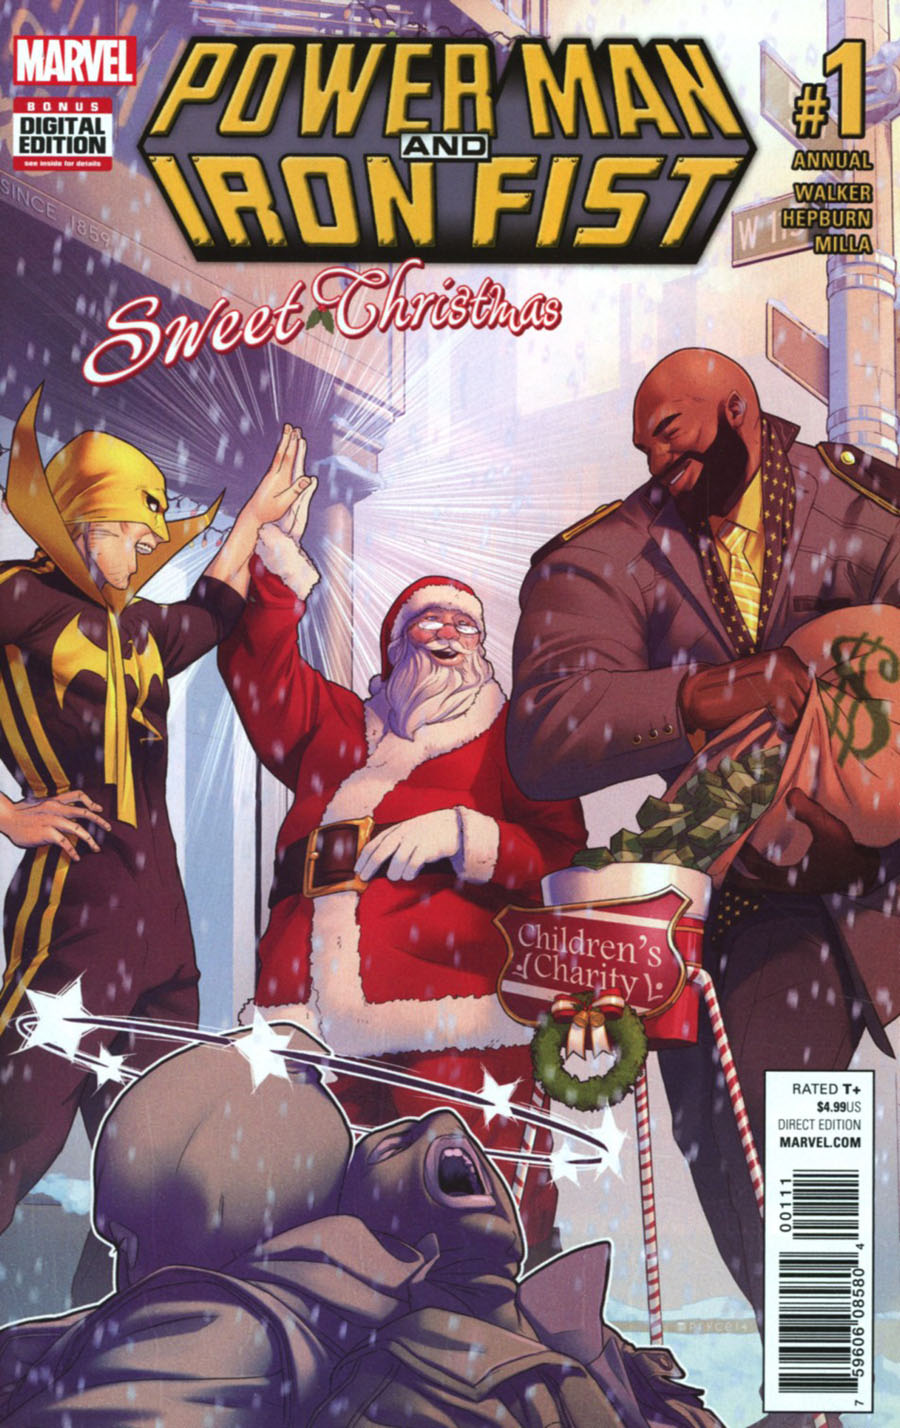 Power Man And Iron Fist Vol 3 Sweet Christmas Annual #1 Cover A Regular Jamal Campbell Cover